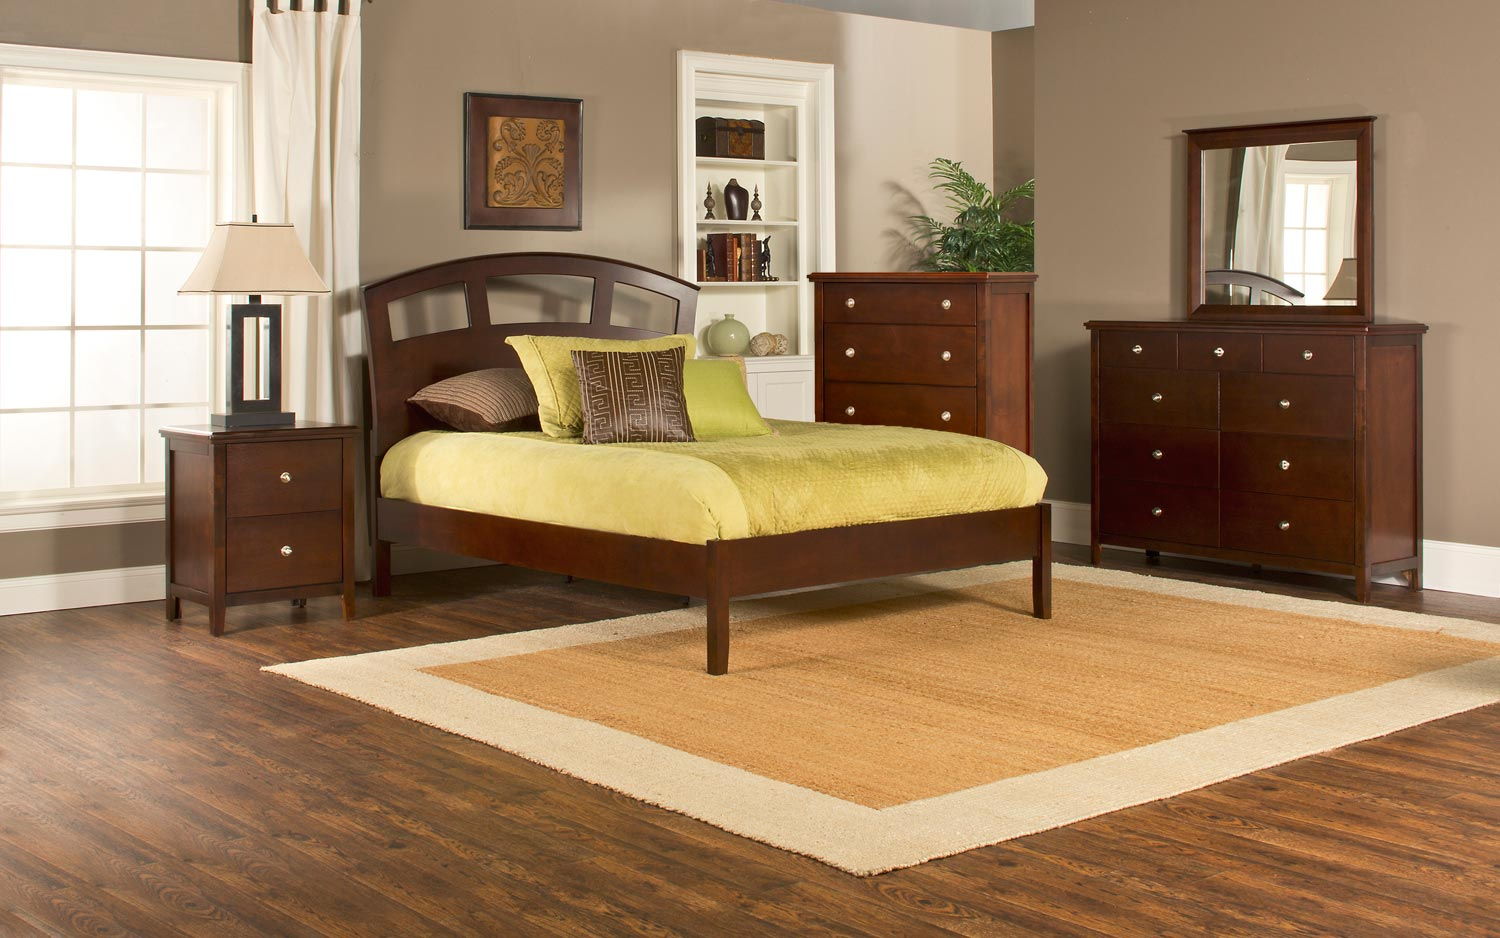 Hillsdale Metro Riva Platform 5-Piece Bedroom Collection - Cherry